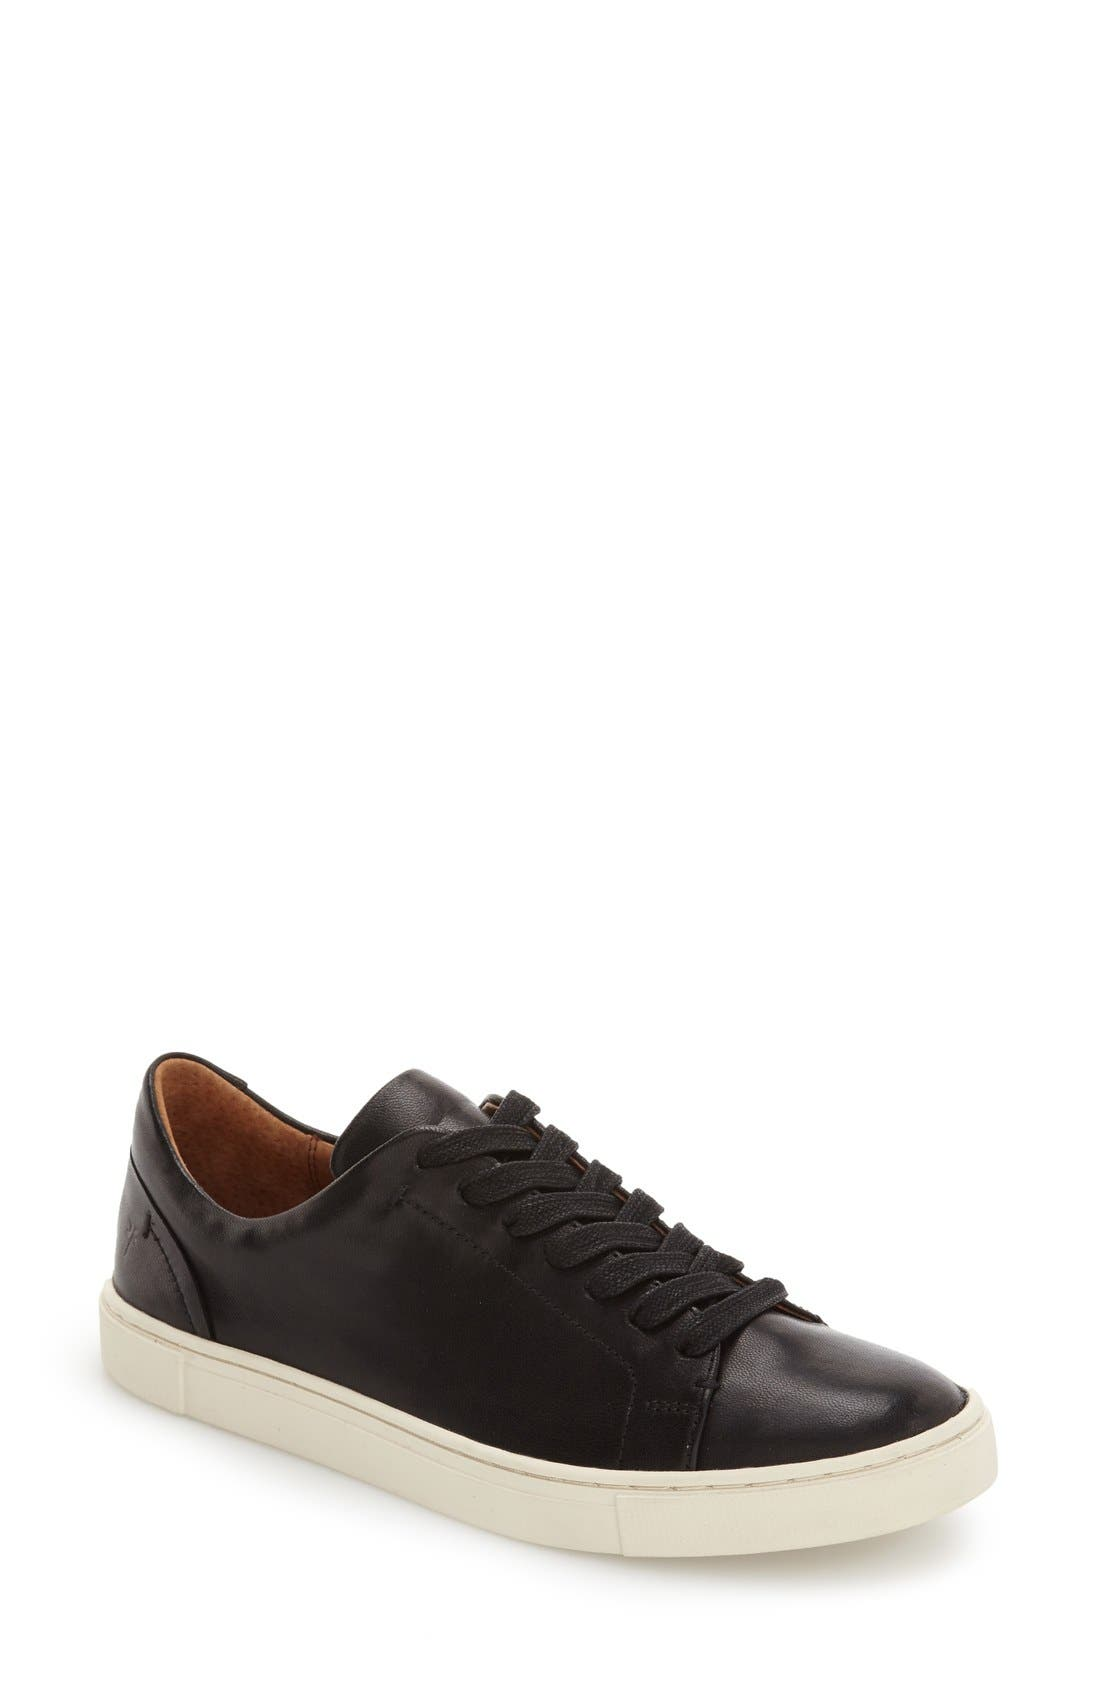 FRYE Ivy Soft Leather Lace-Up Low-Top Sneakers in Black Leather